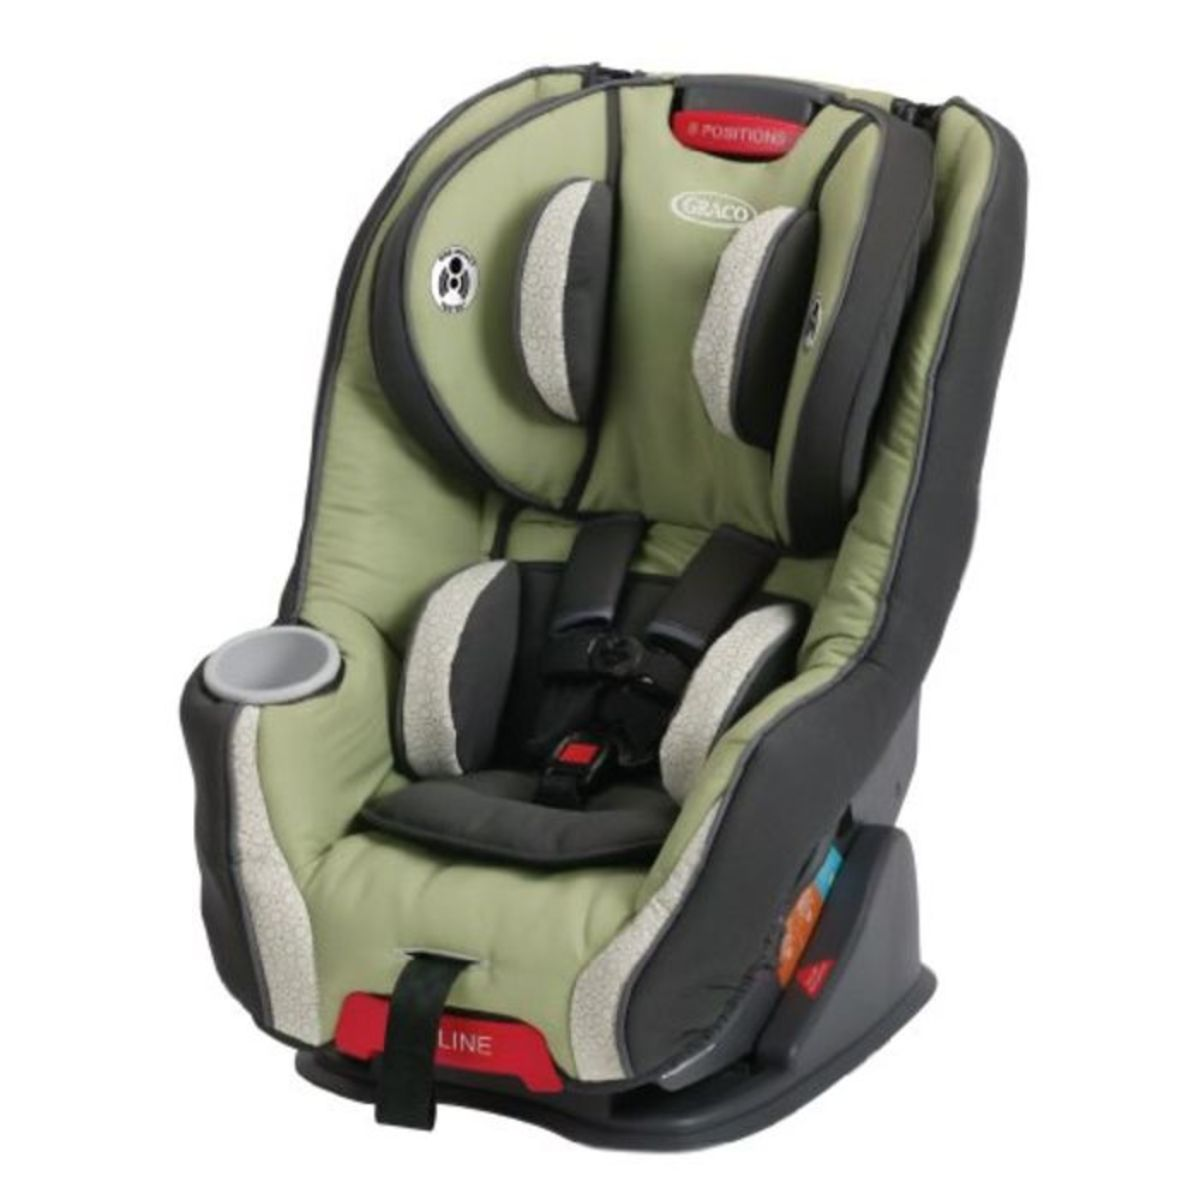 Safest Cheap Convertible Car Seats